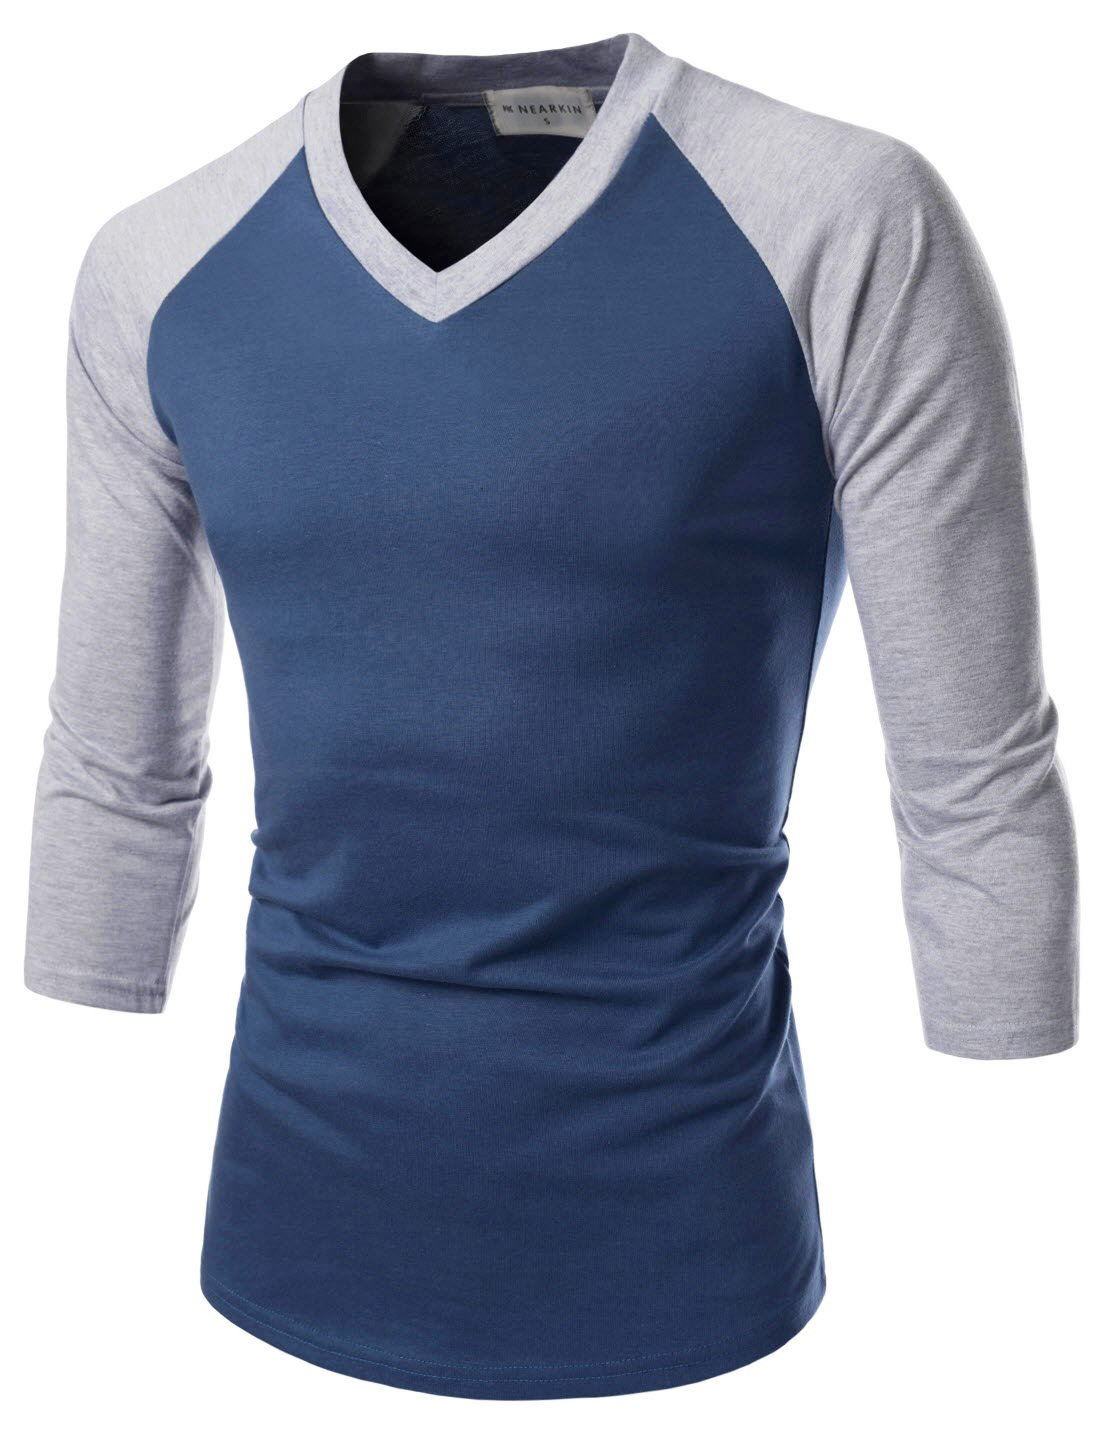 NEARKIN (NKNKR7T621) Unisex 3/4 Sleeve Raglan Design V-Neck Fitted T-shirts BLUEGRAY US S(Tag size M)